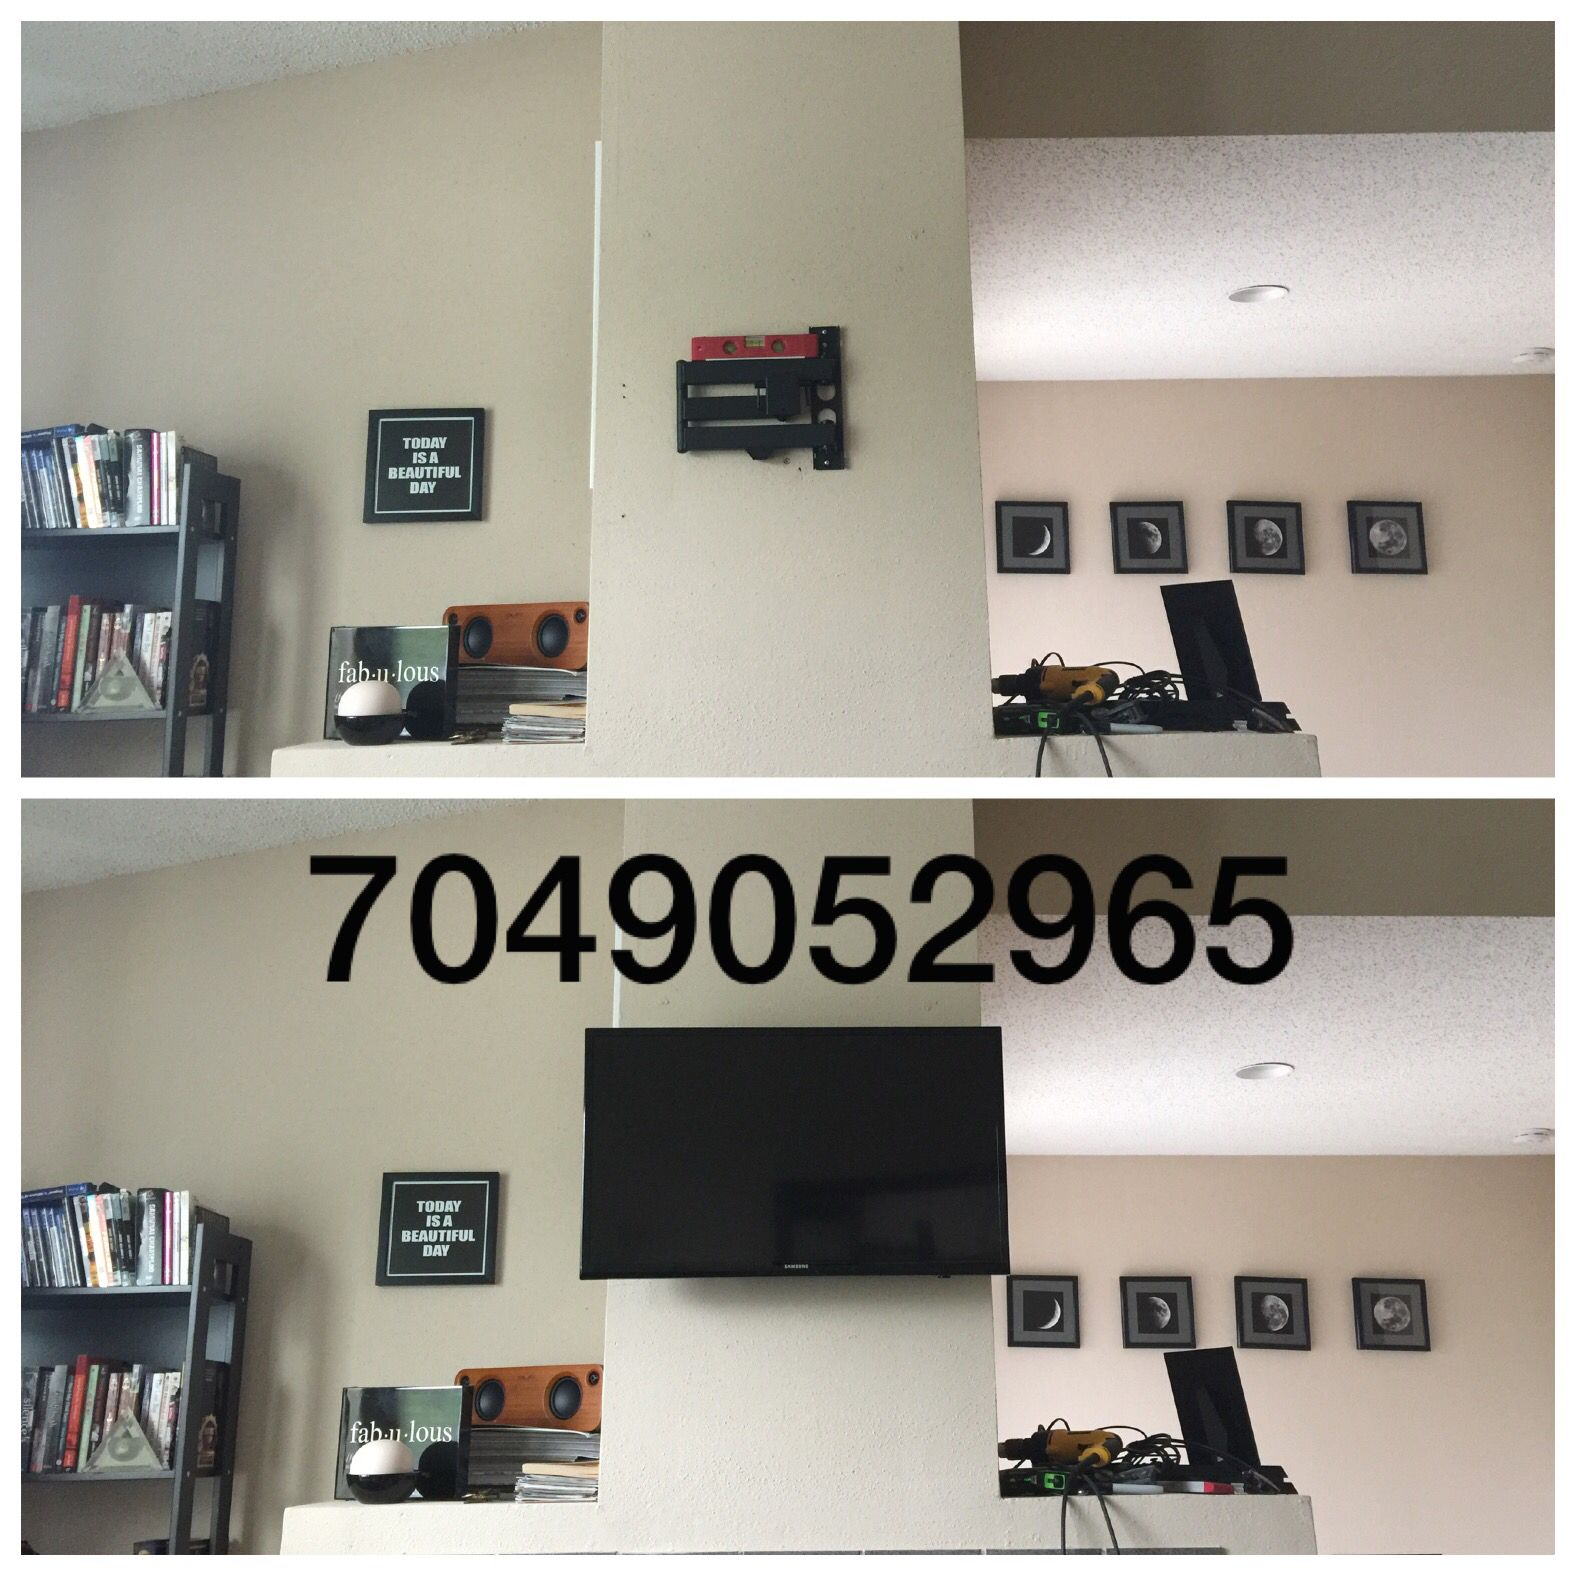 Flatscreen Tv Wall Mounting Commercial Residential Home Theater And Wiring For Network